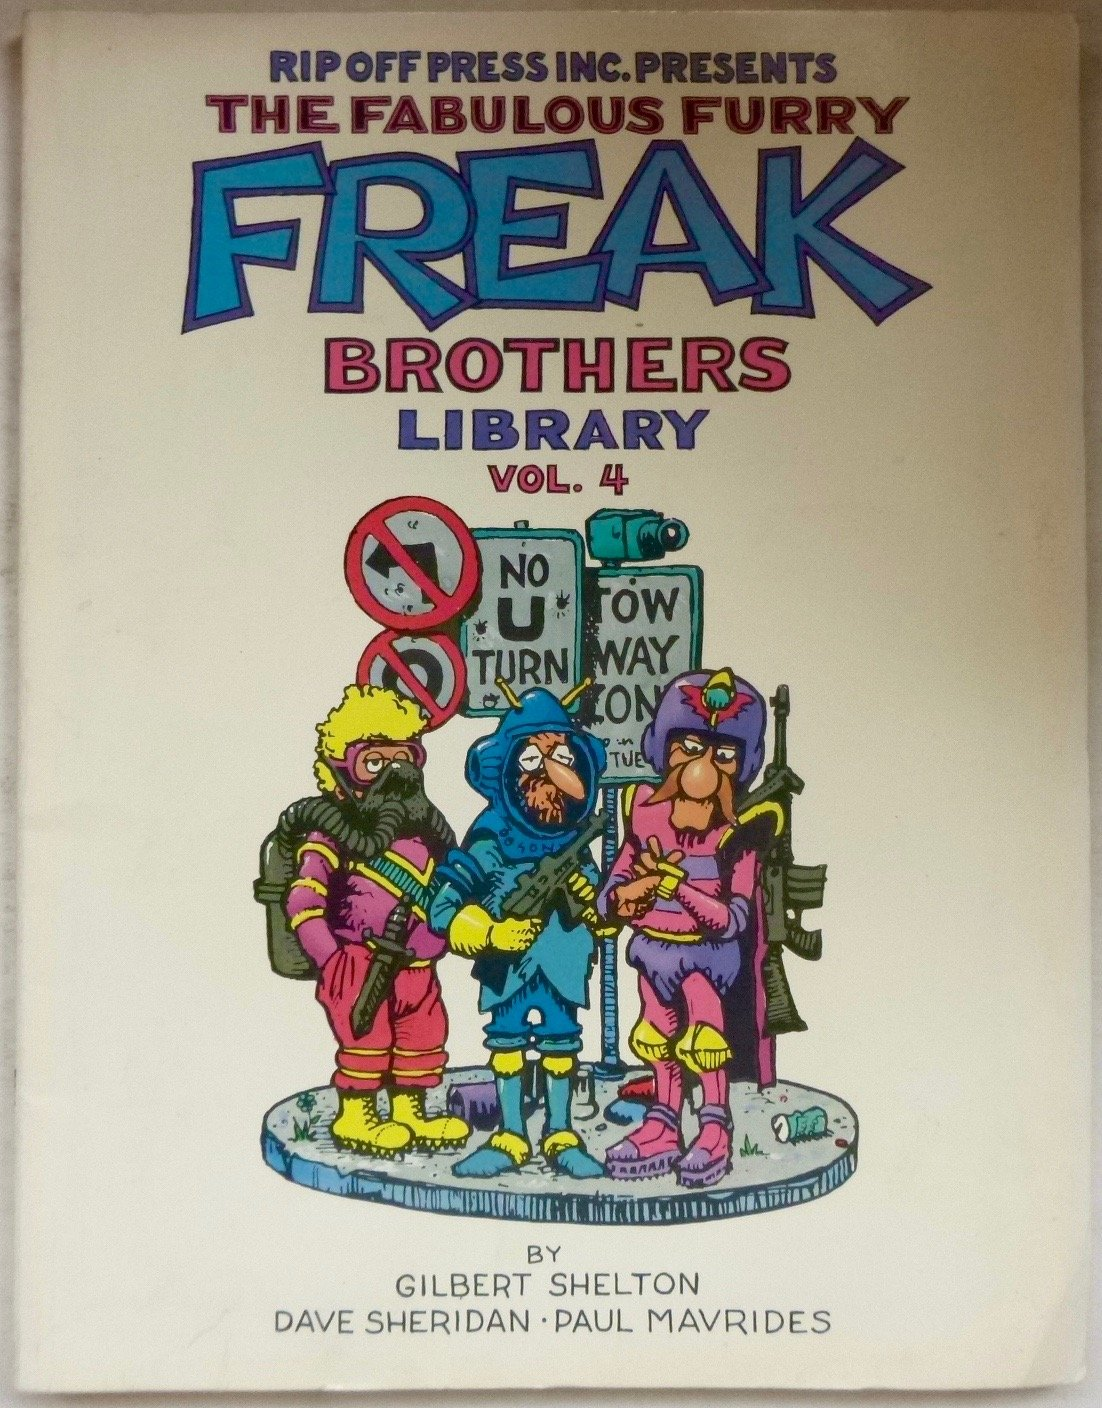 The Fabulous Furry Freak Brothers Library Vol 1 4